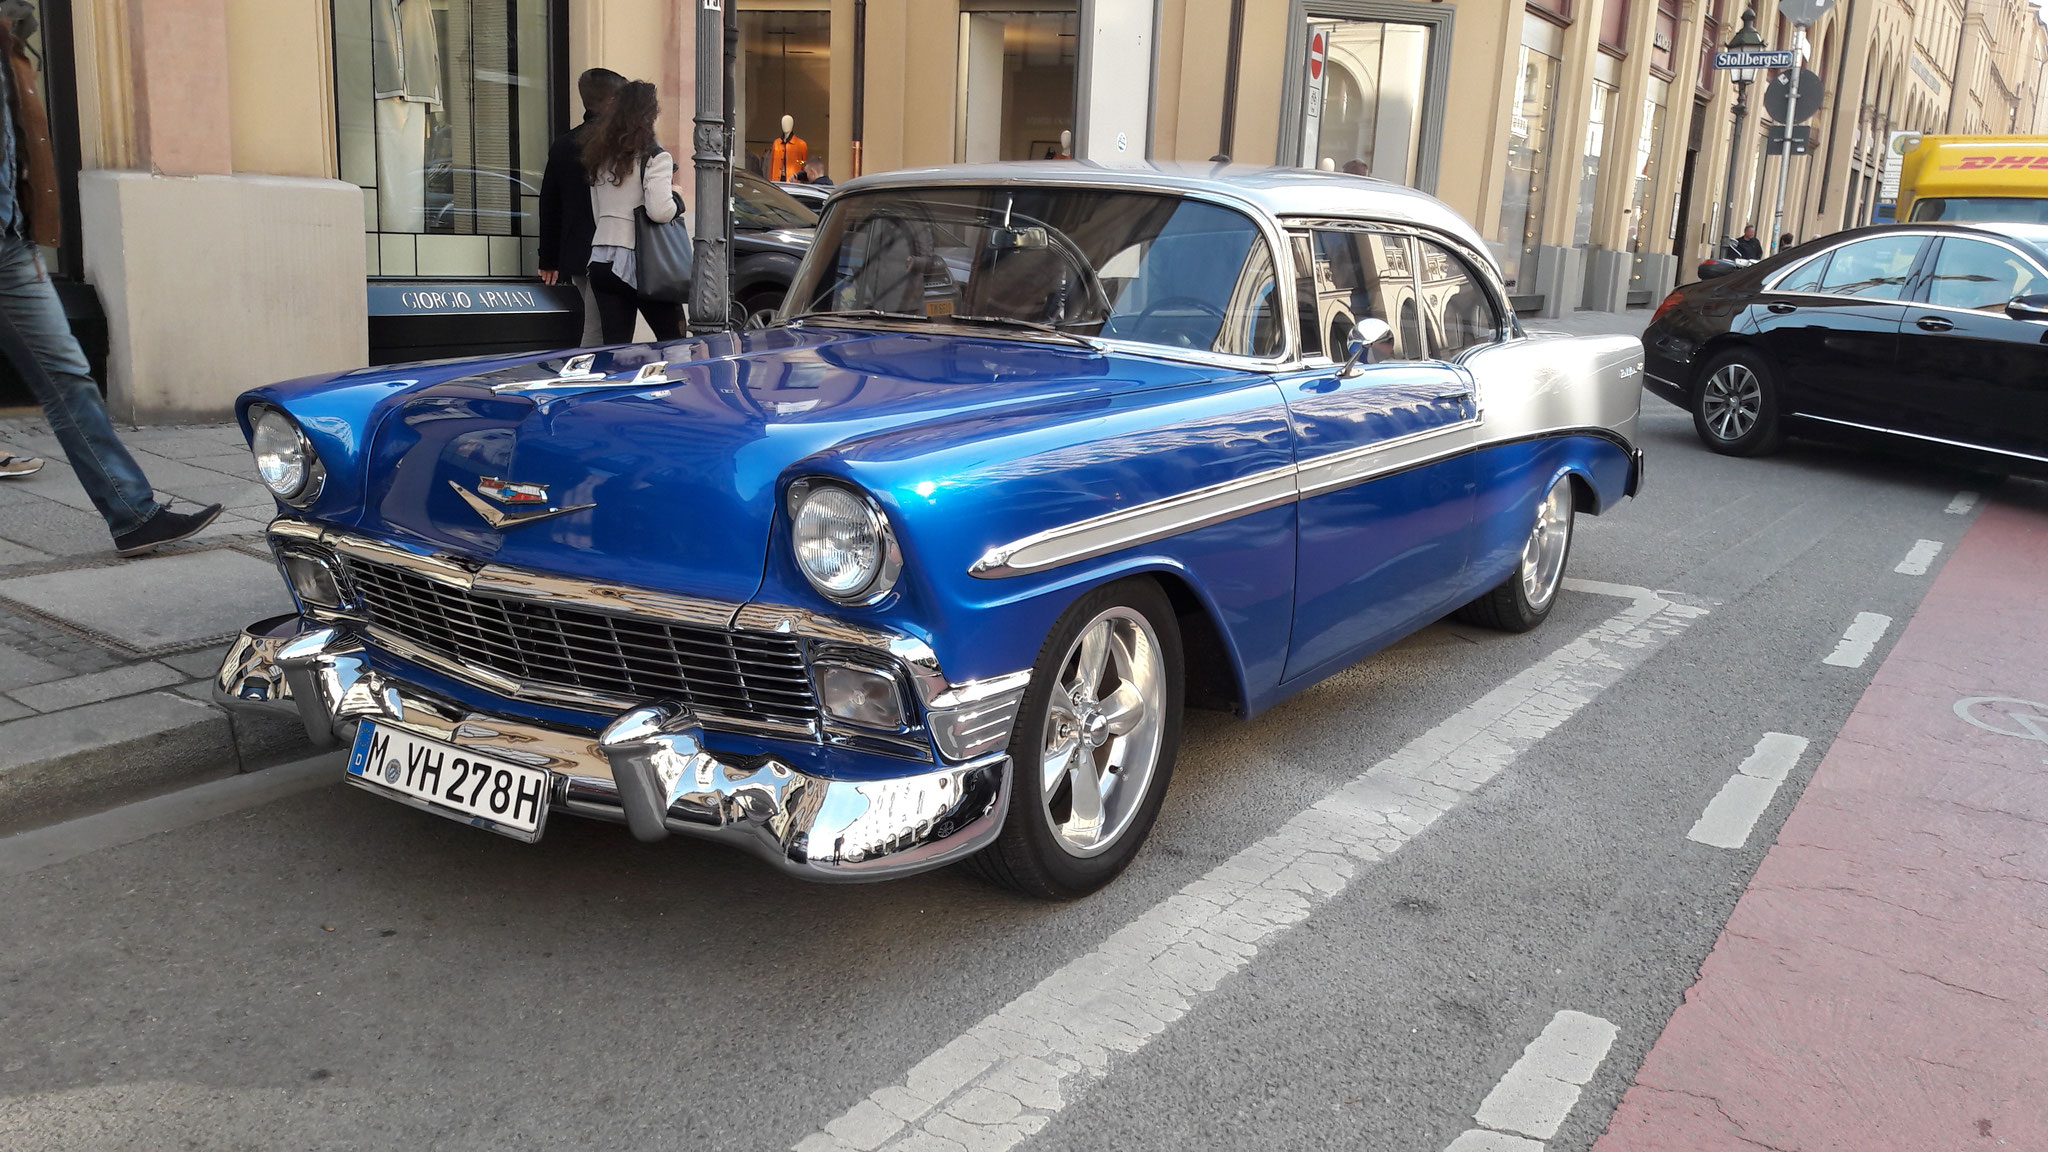 Chevrolet Bel Air - M-YH-278H